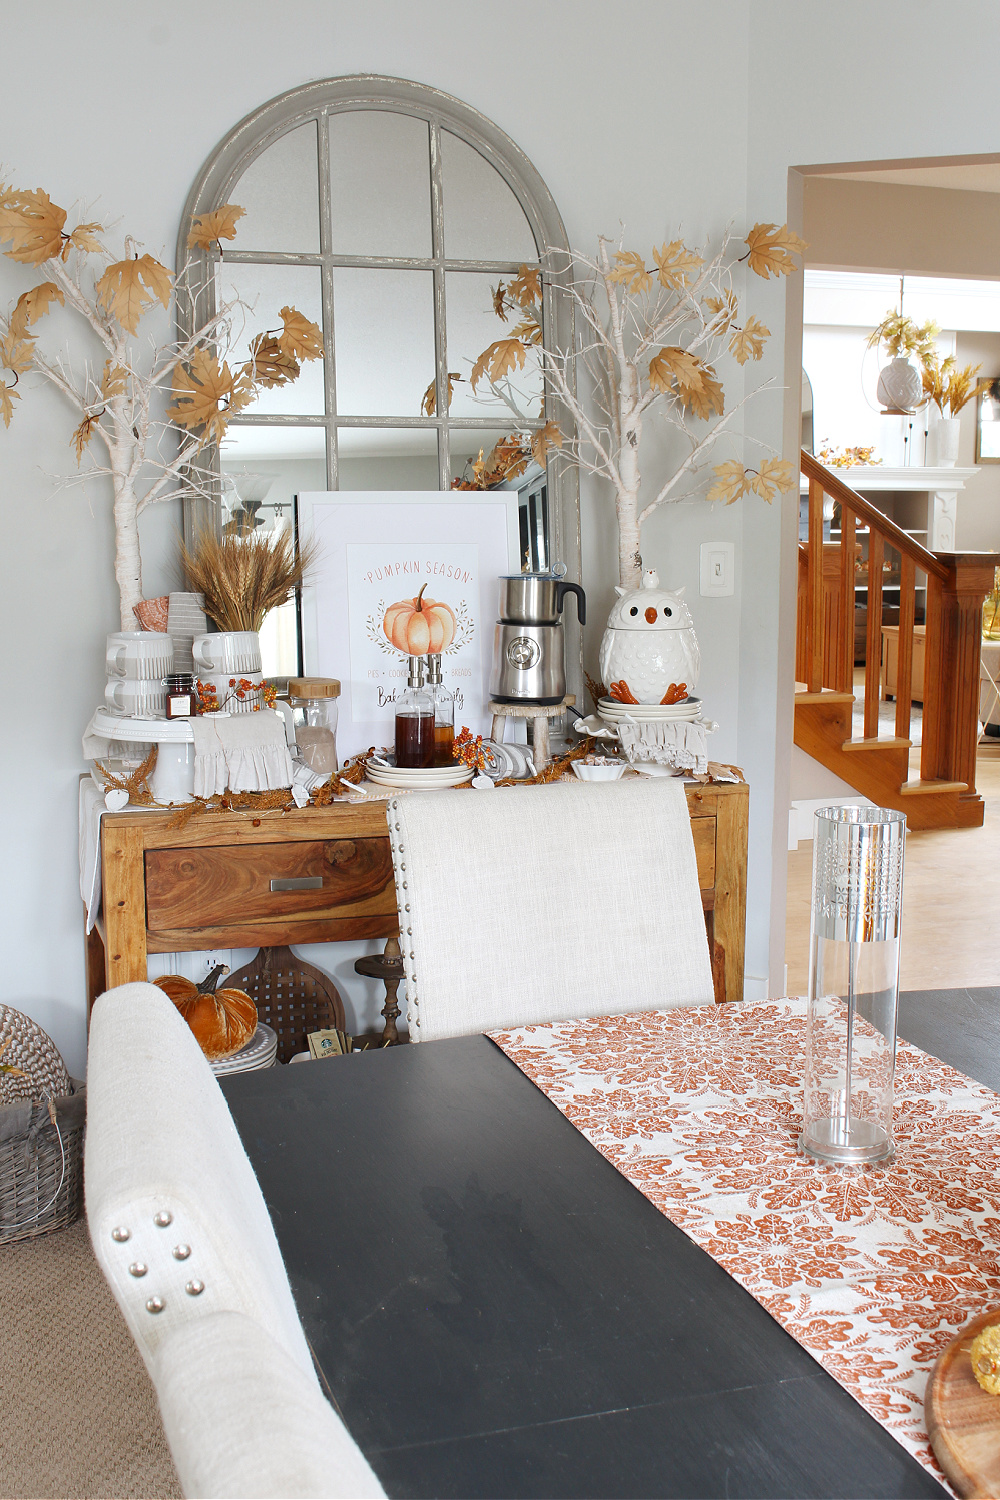 Modern farmhouse dining room decorated for fall with traditional fall colors.